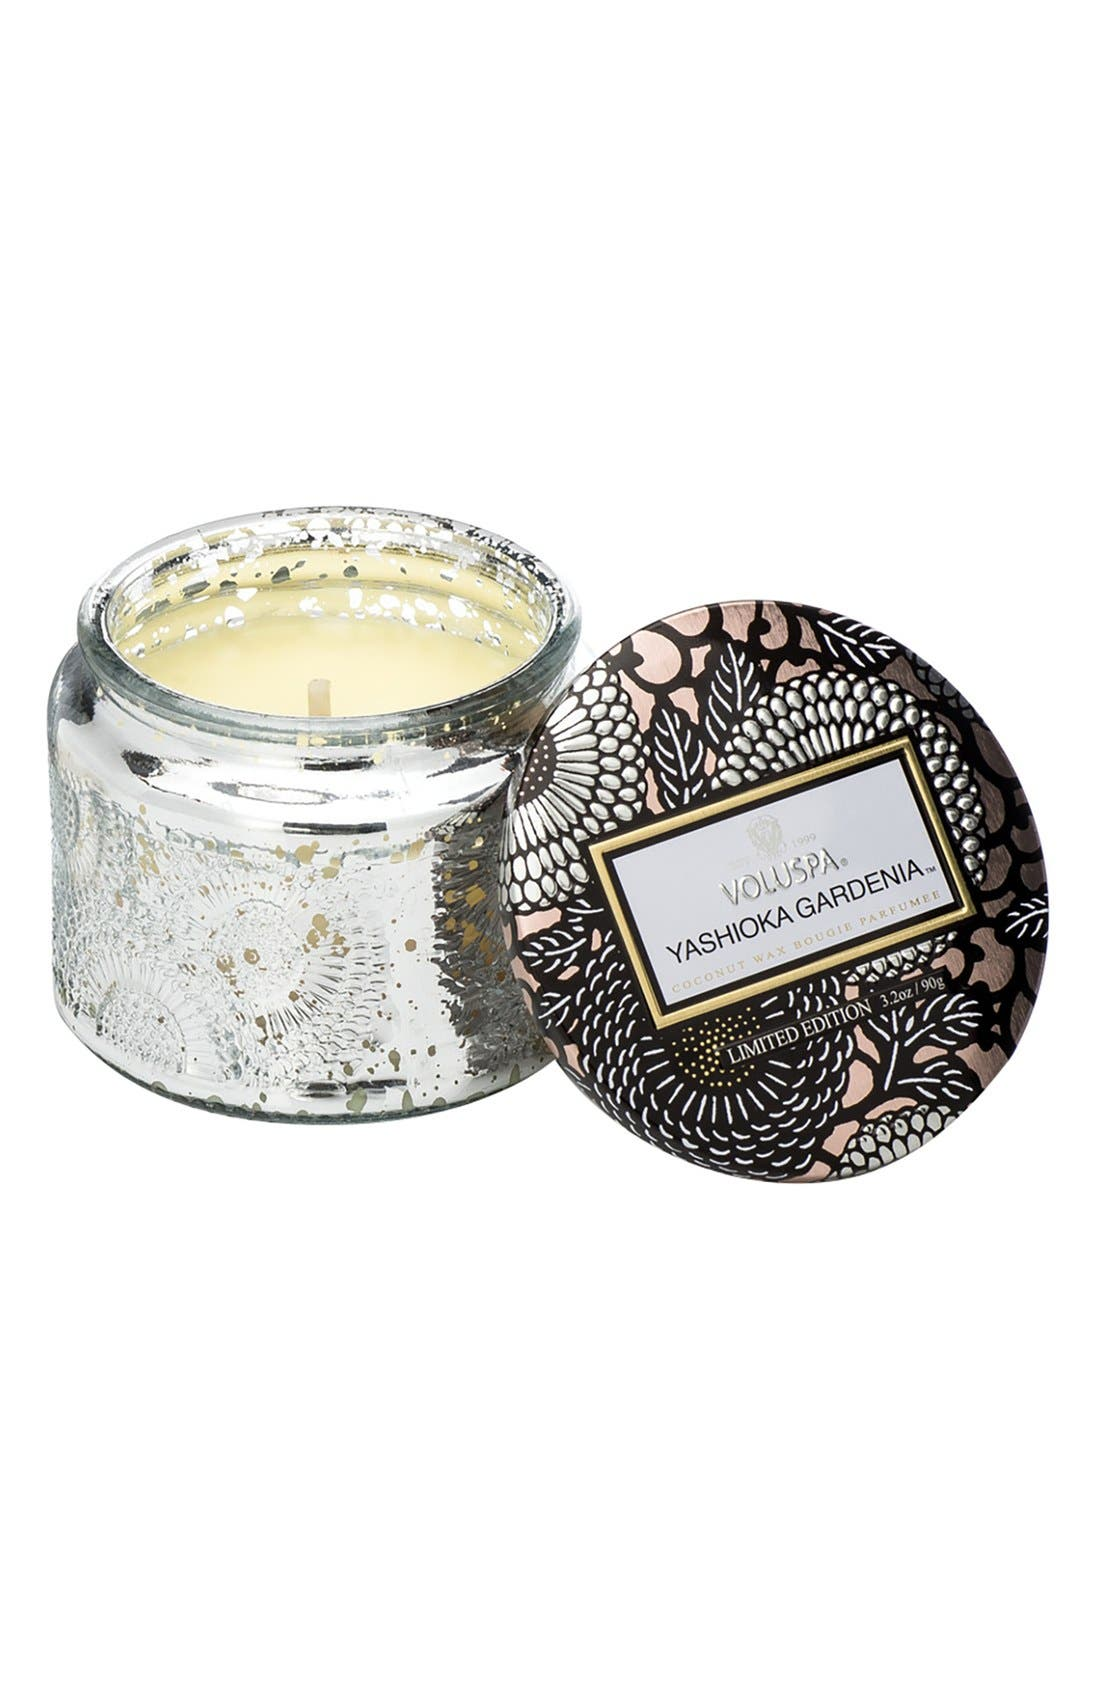 Voluspa 'Japonica - Yashioka Gardenia' Petite Embossed Glass Jar Candle (Limited Edition)